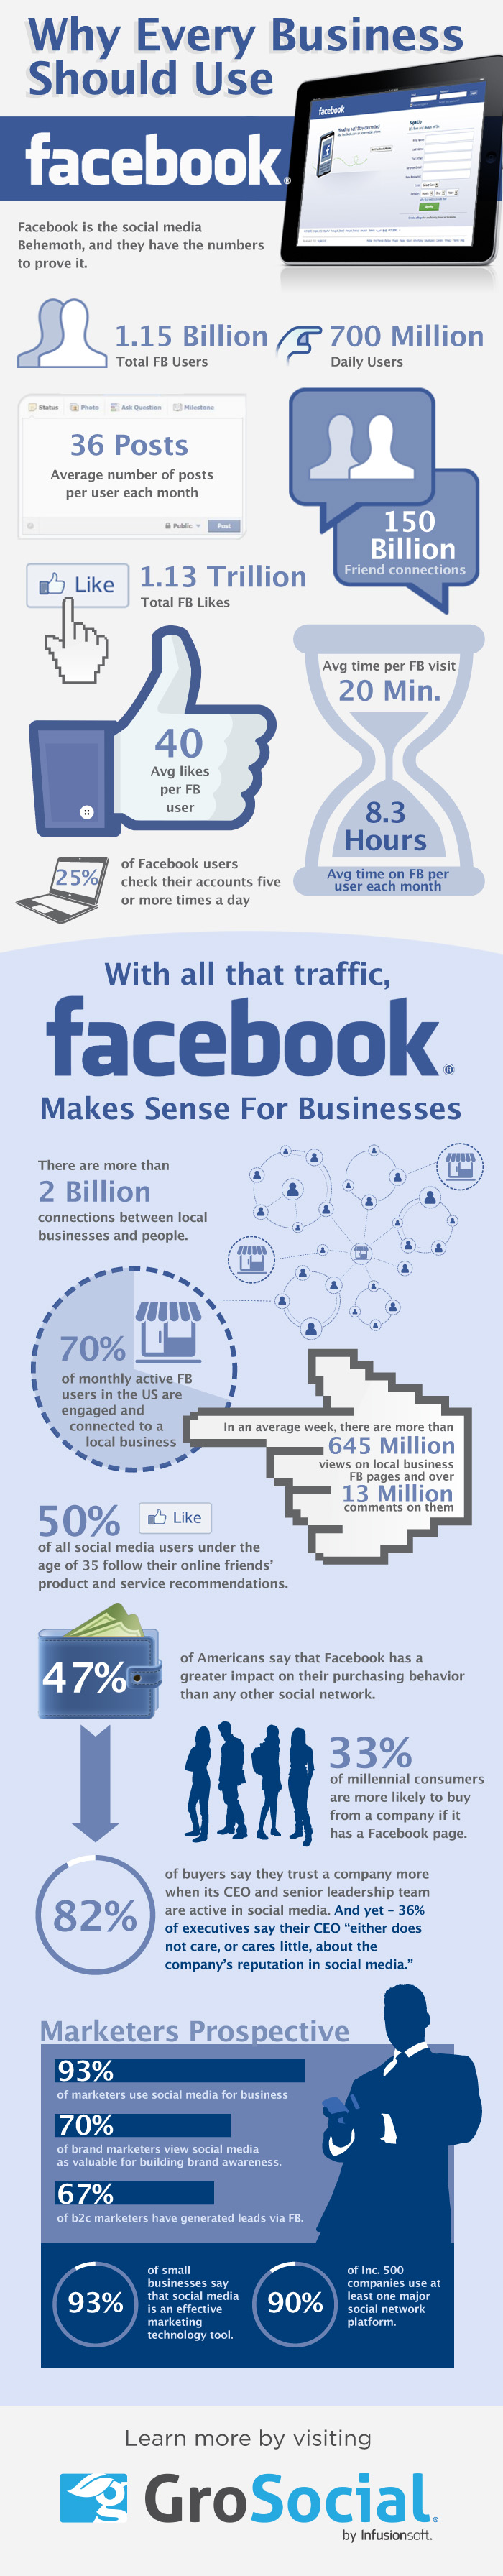 Why Every Business Should Use Facebook